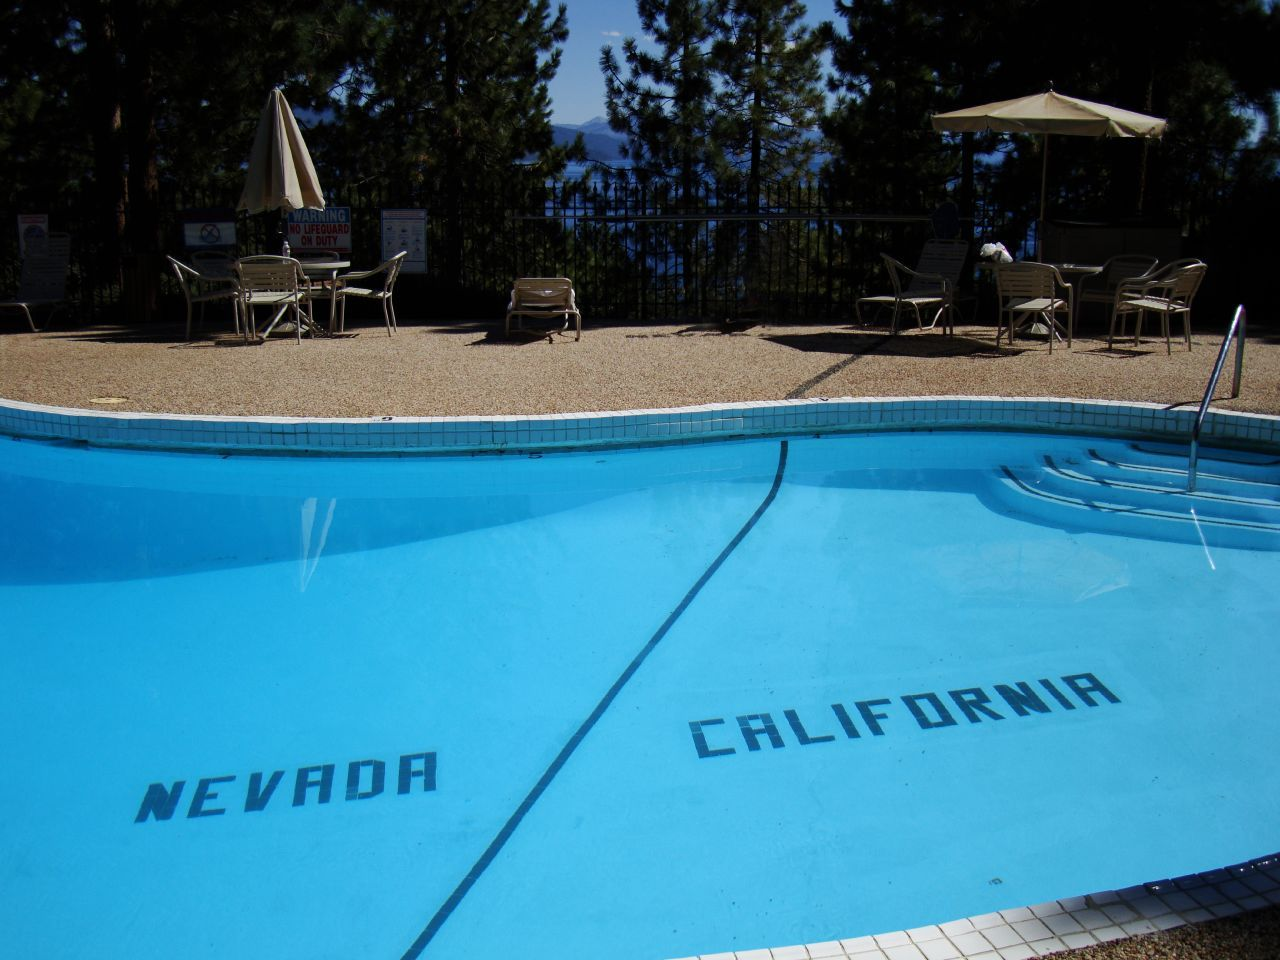 hugsandhairtugs:  At the Cal-Neva Lodge in Lake Tahoe, the Nevada/California state line actually runs through the swimming pool. Fun fact:  Cal-Neva was once co-owned by Frank Sinatra.